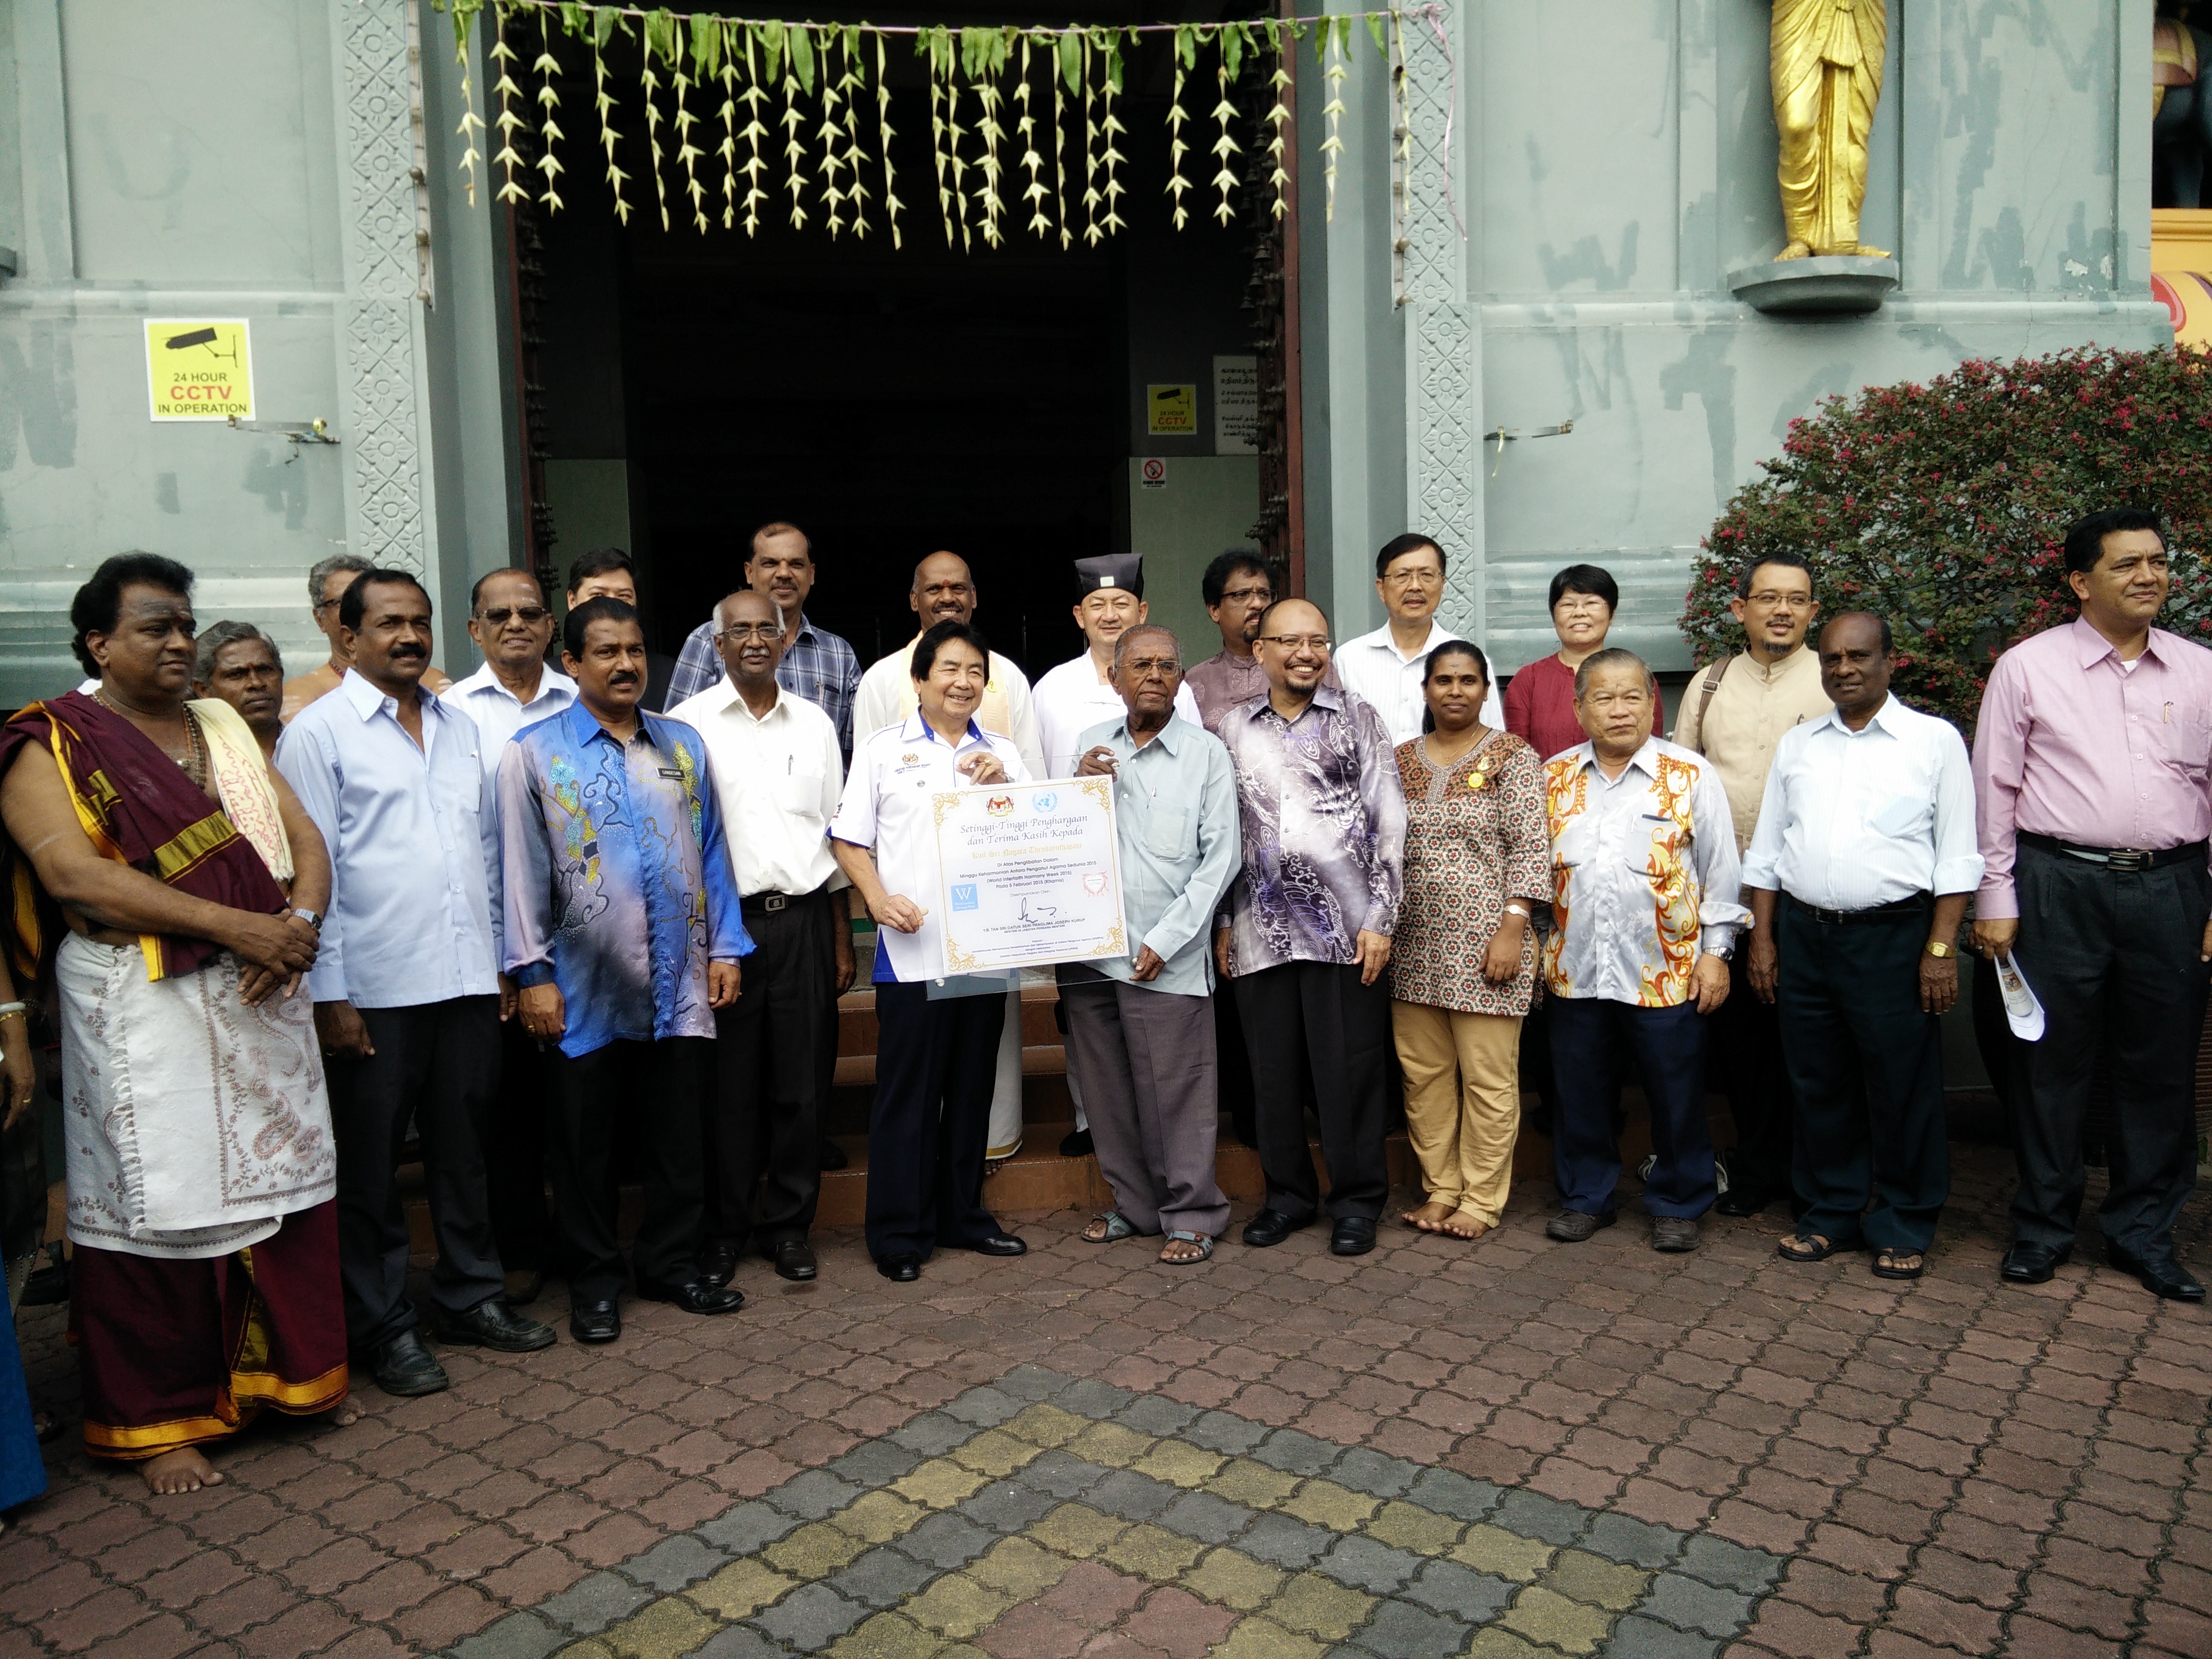 JKMPKA members and Minister Tan Sri Joseph Kurup with Hindu Temple leaders at WIHW 2015 program in Klang.jpg